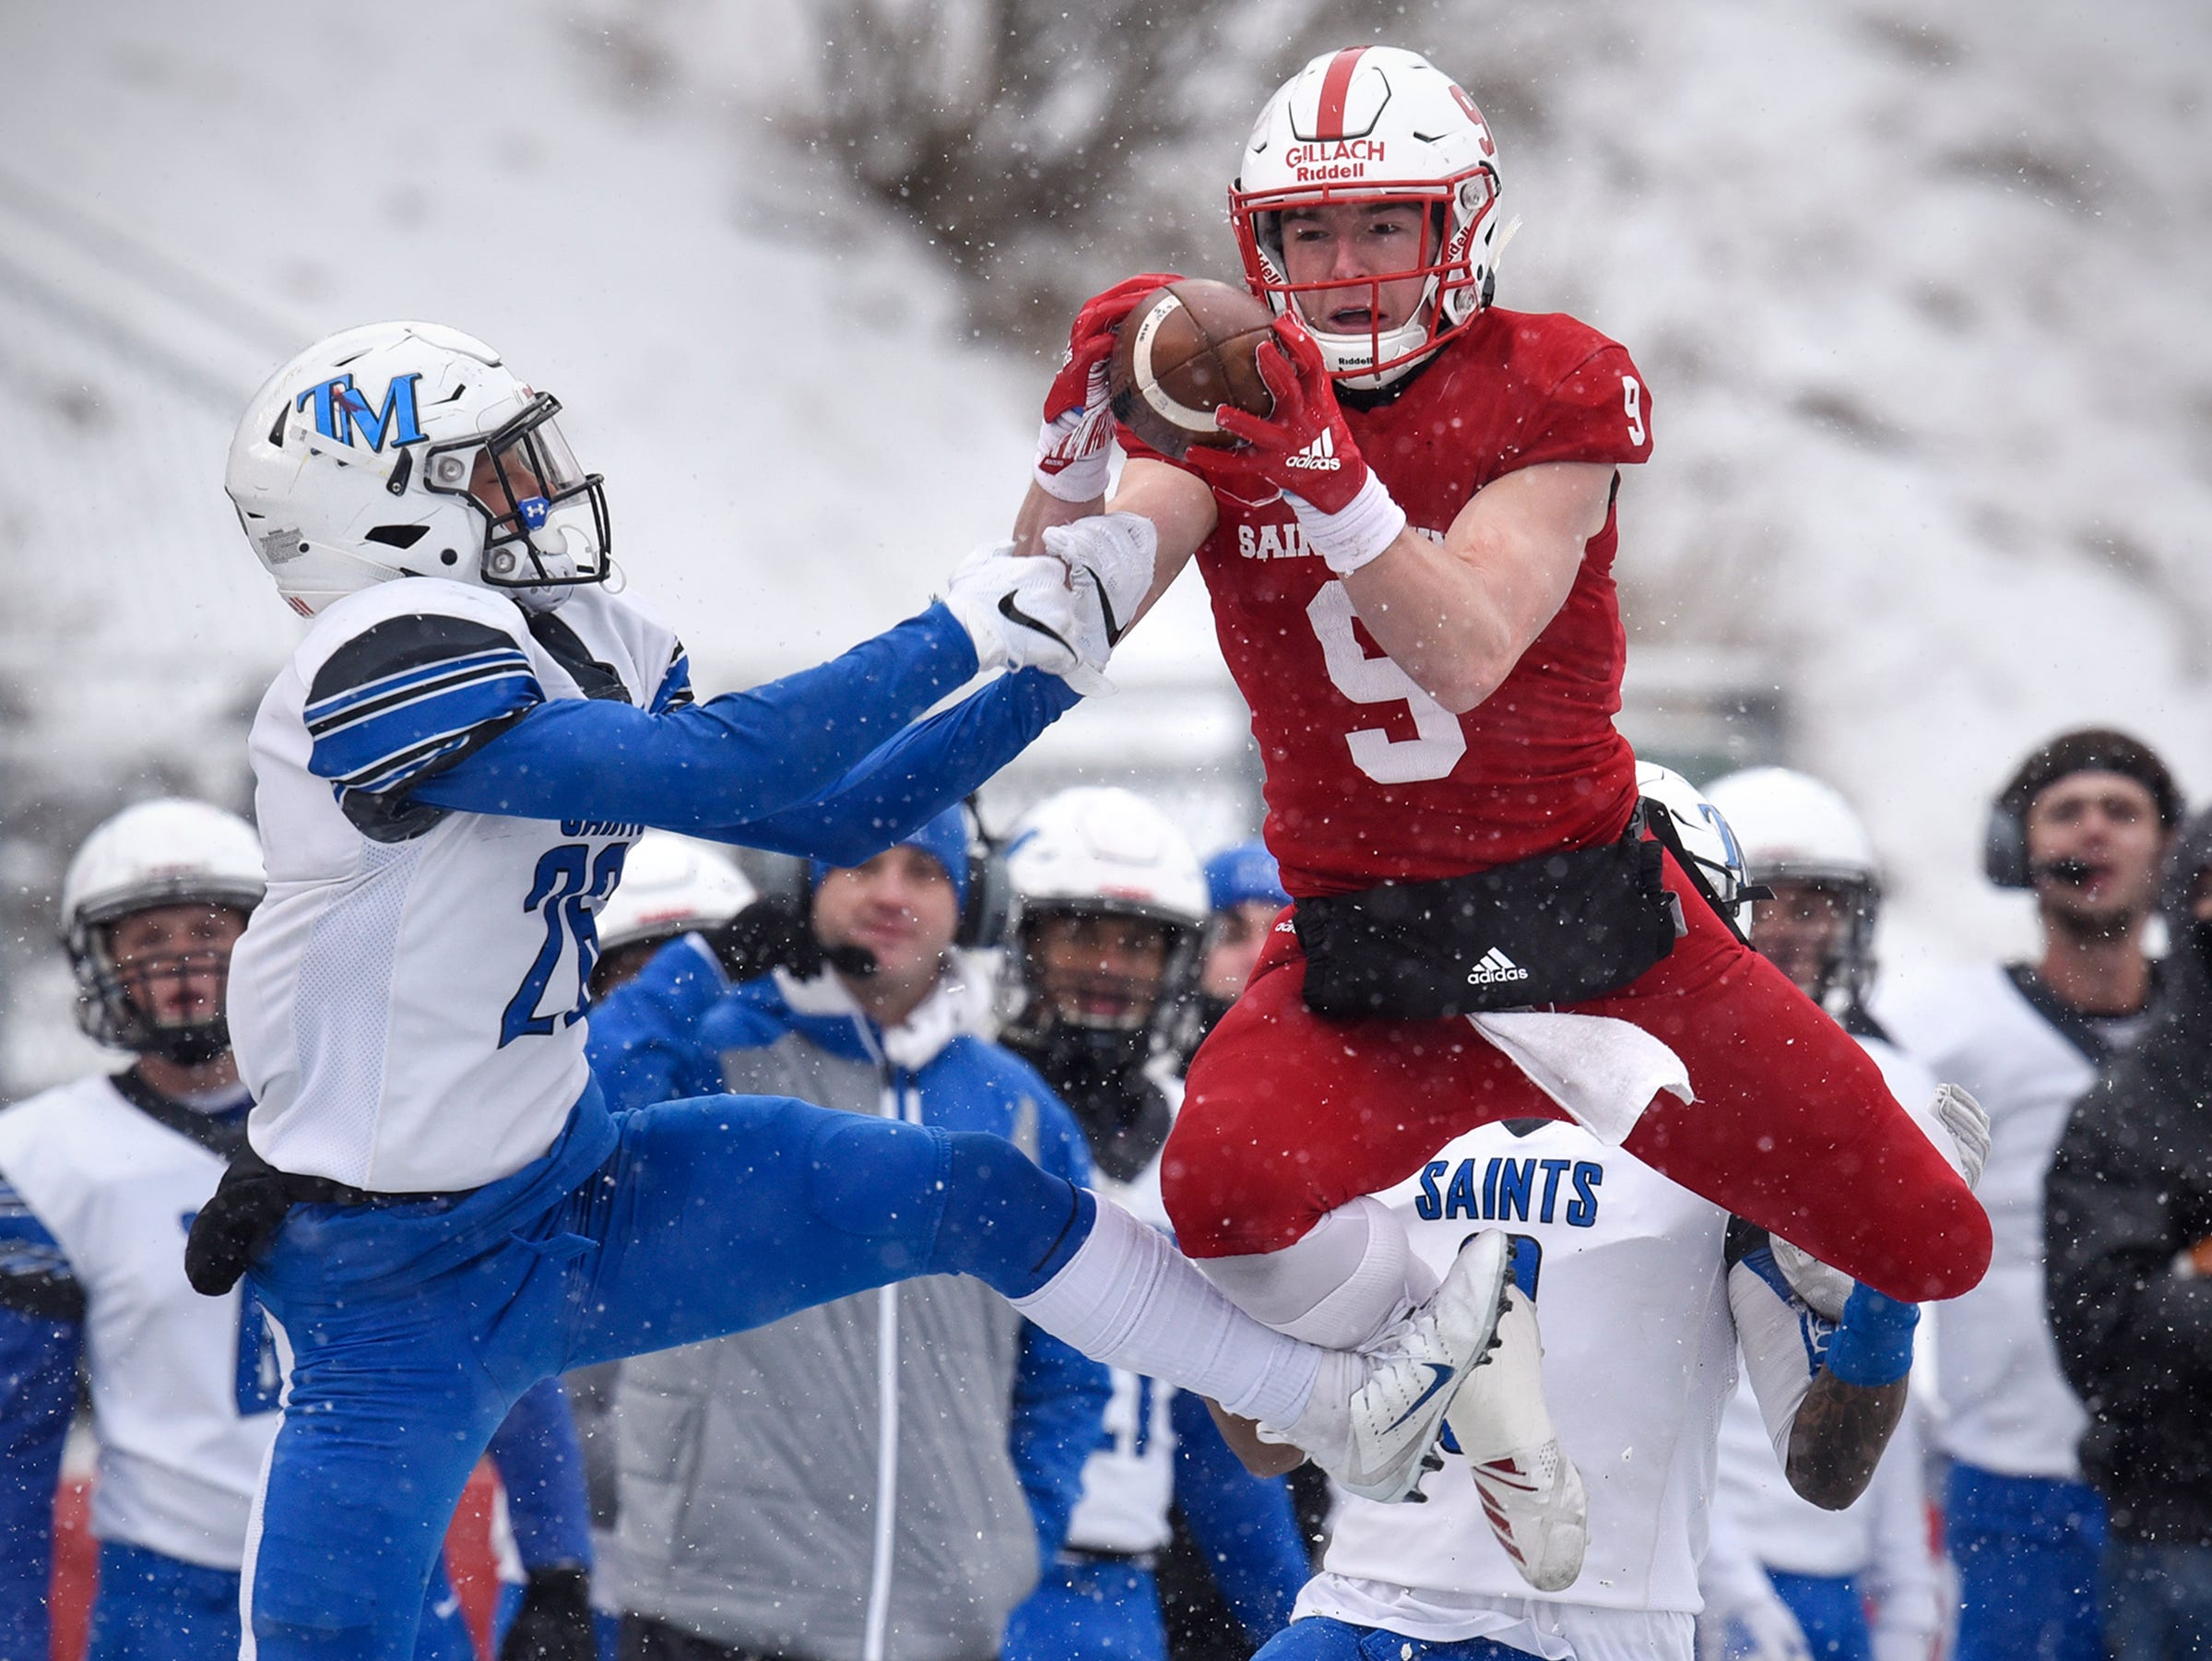 Will Gillach of St. John's leaps to make a reception during the first half of the Saturday, Nov. 10, game against Thomas More University at Clemens Stadium in Collegeville.